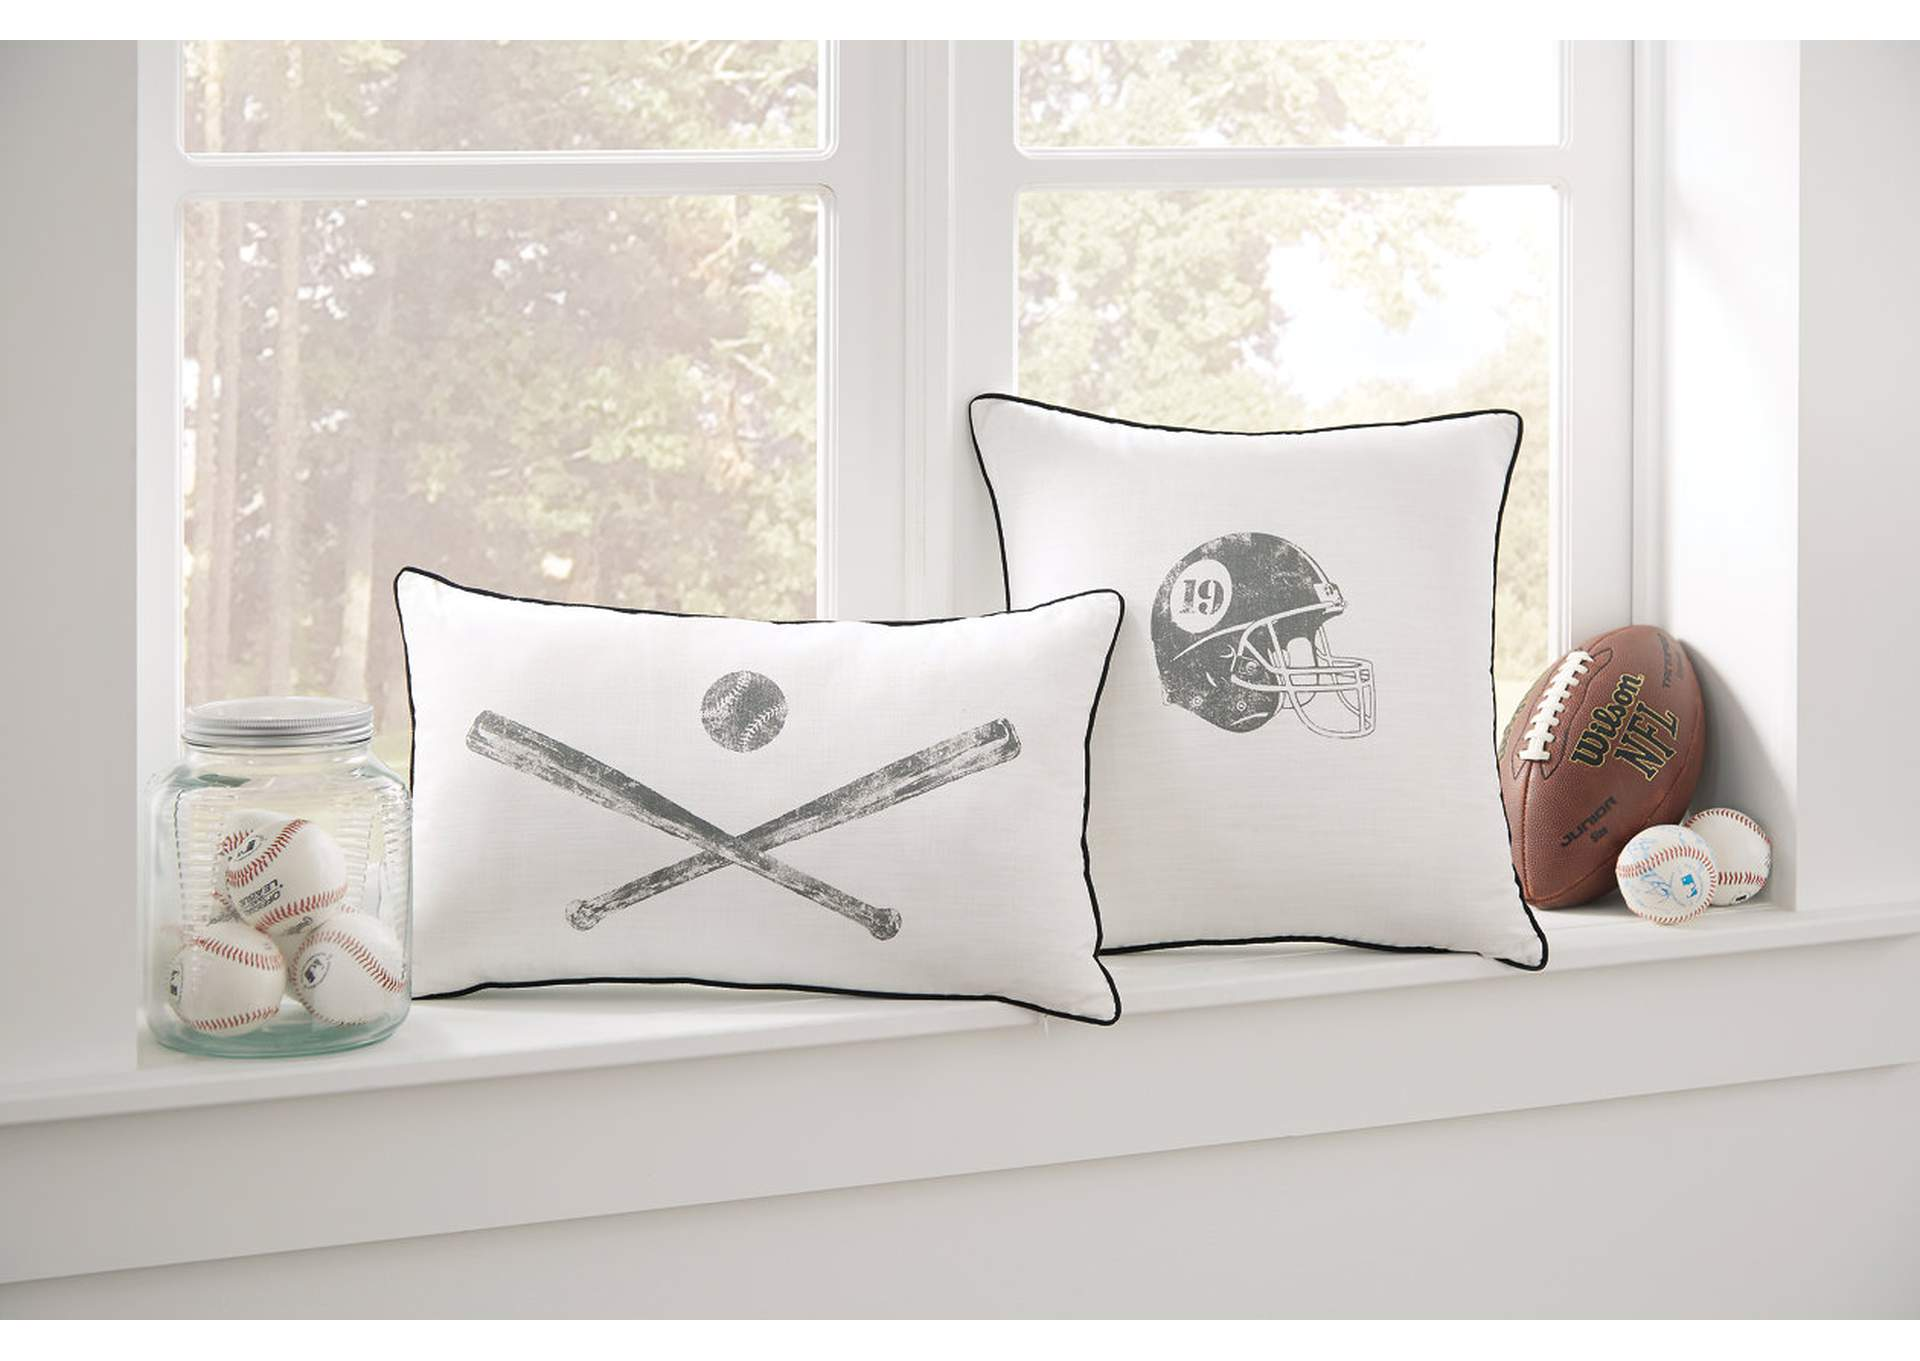 Waman Football Design 4 Piece Pillow Set,Direct To Consumer Express